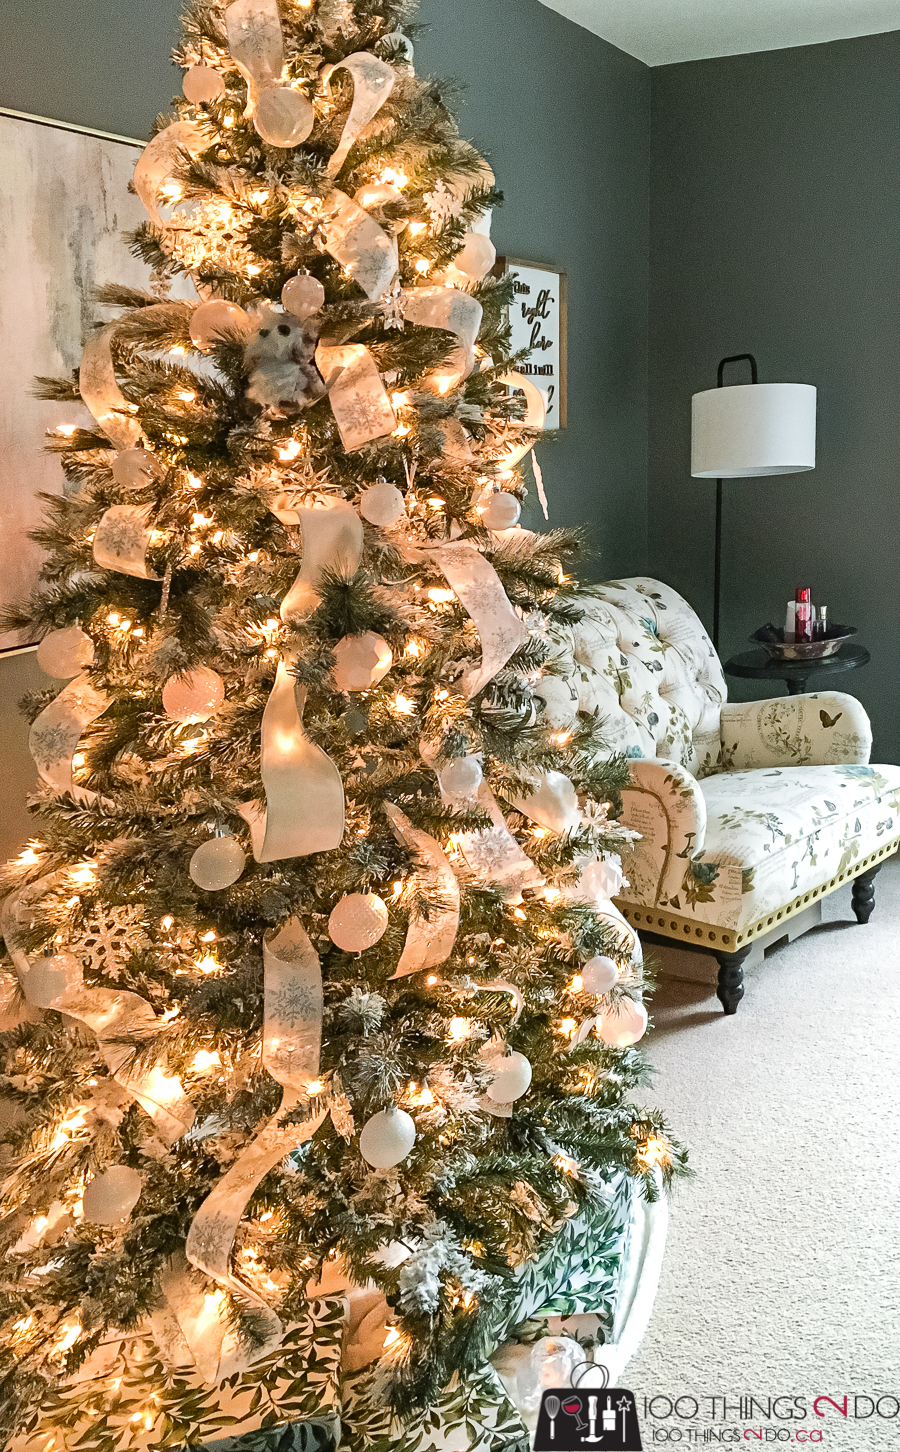 Christmas tree in the bedroom